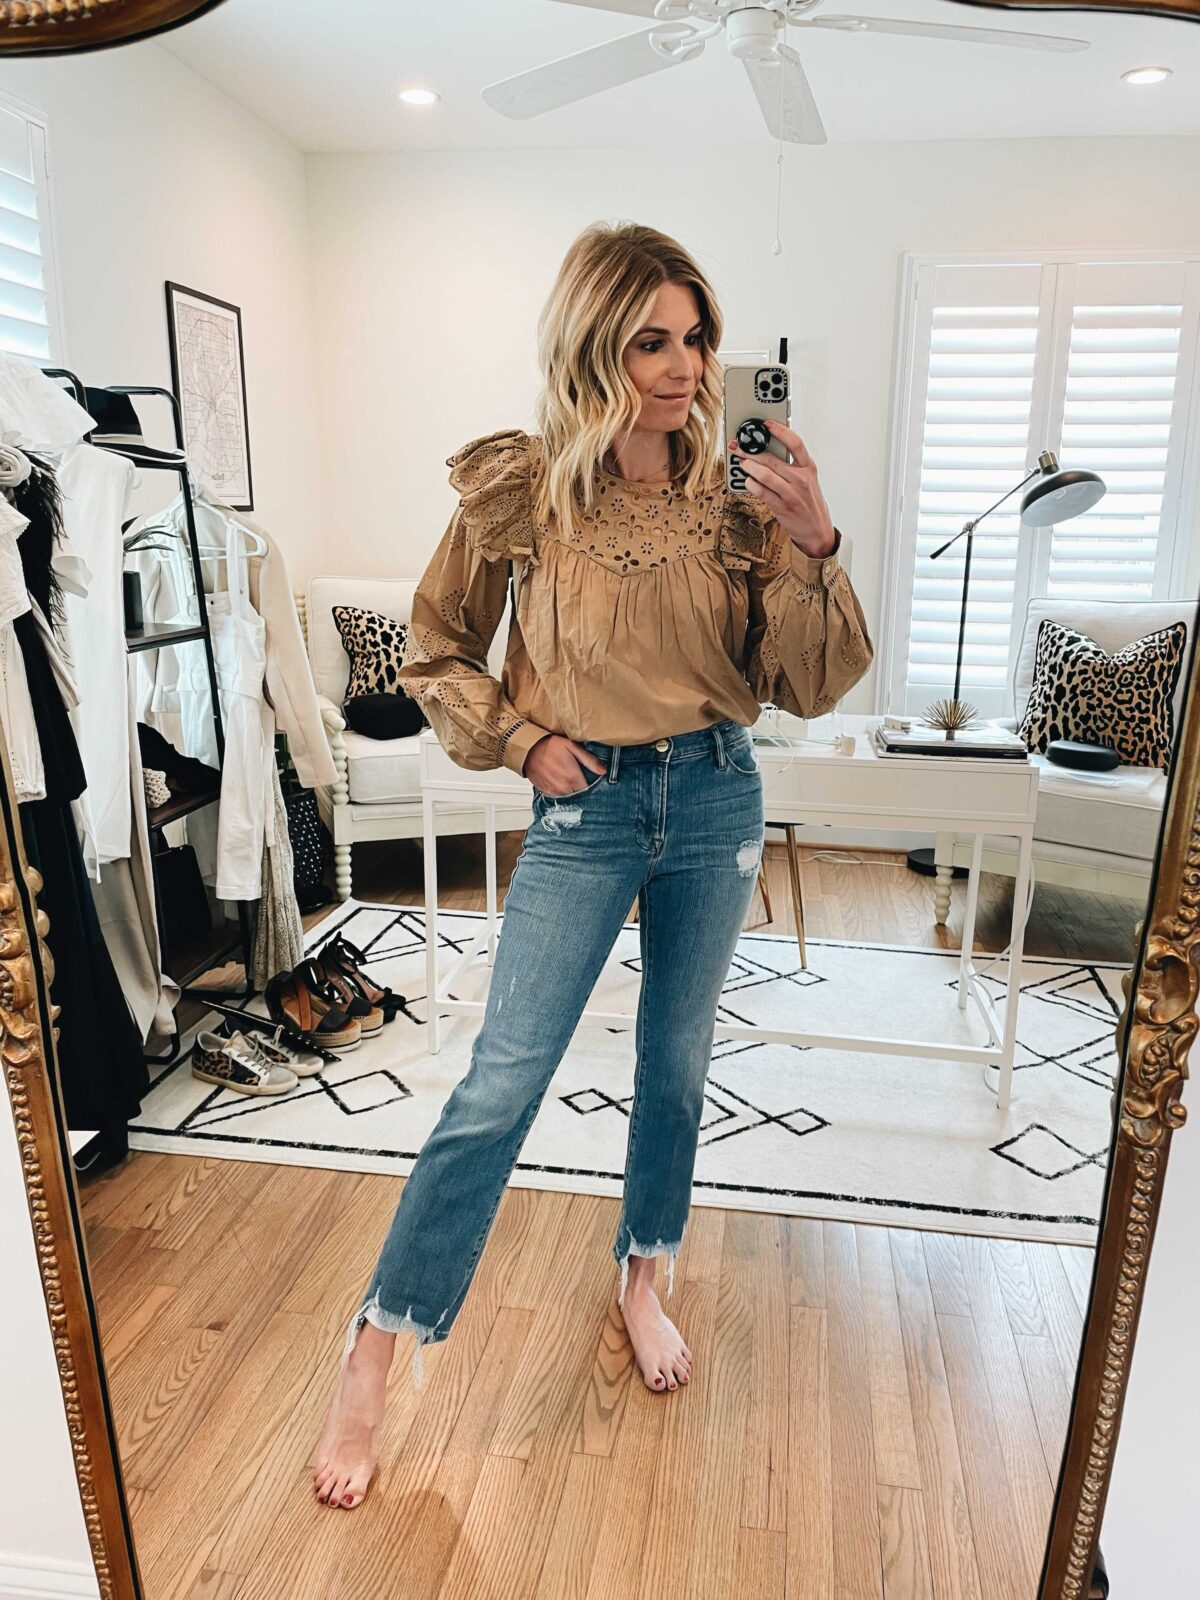 woman wearing denim jeans and brown top while taking a selfie